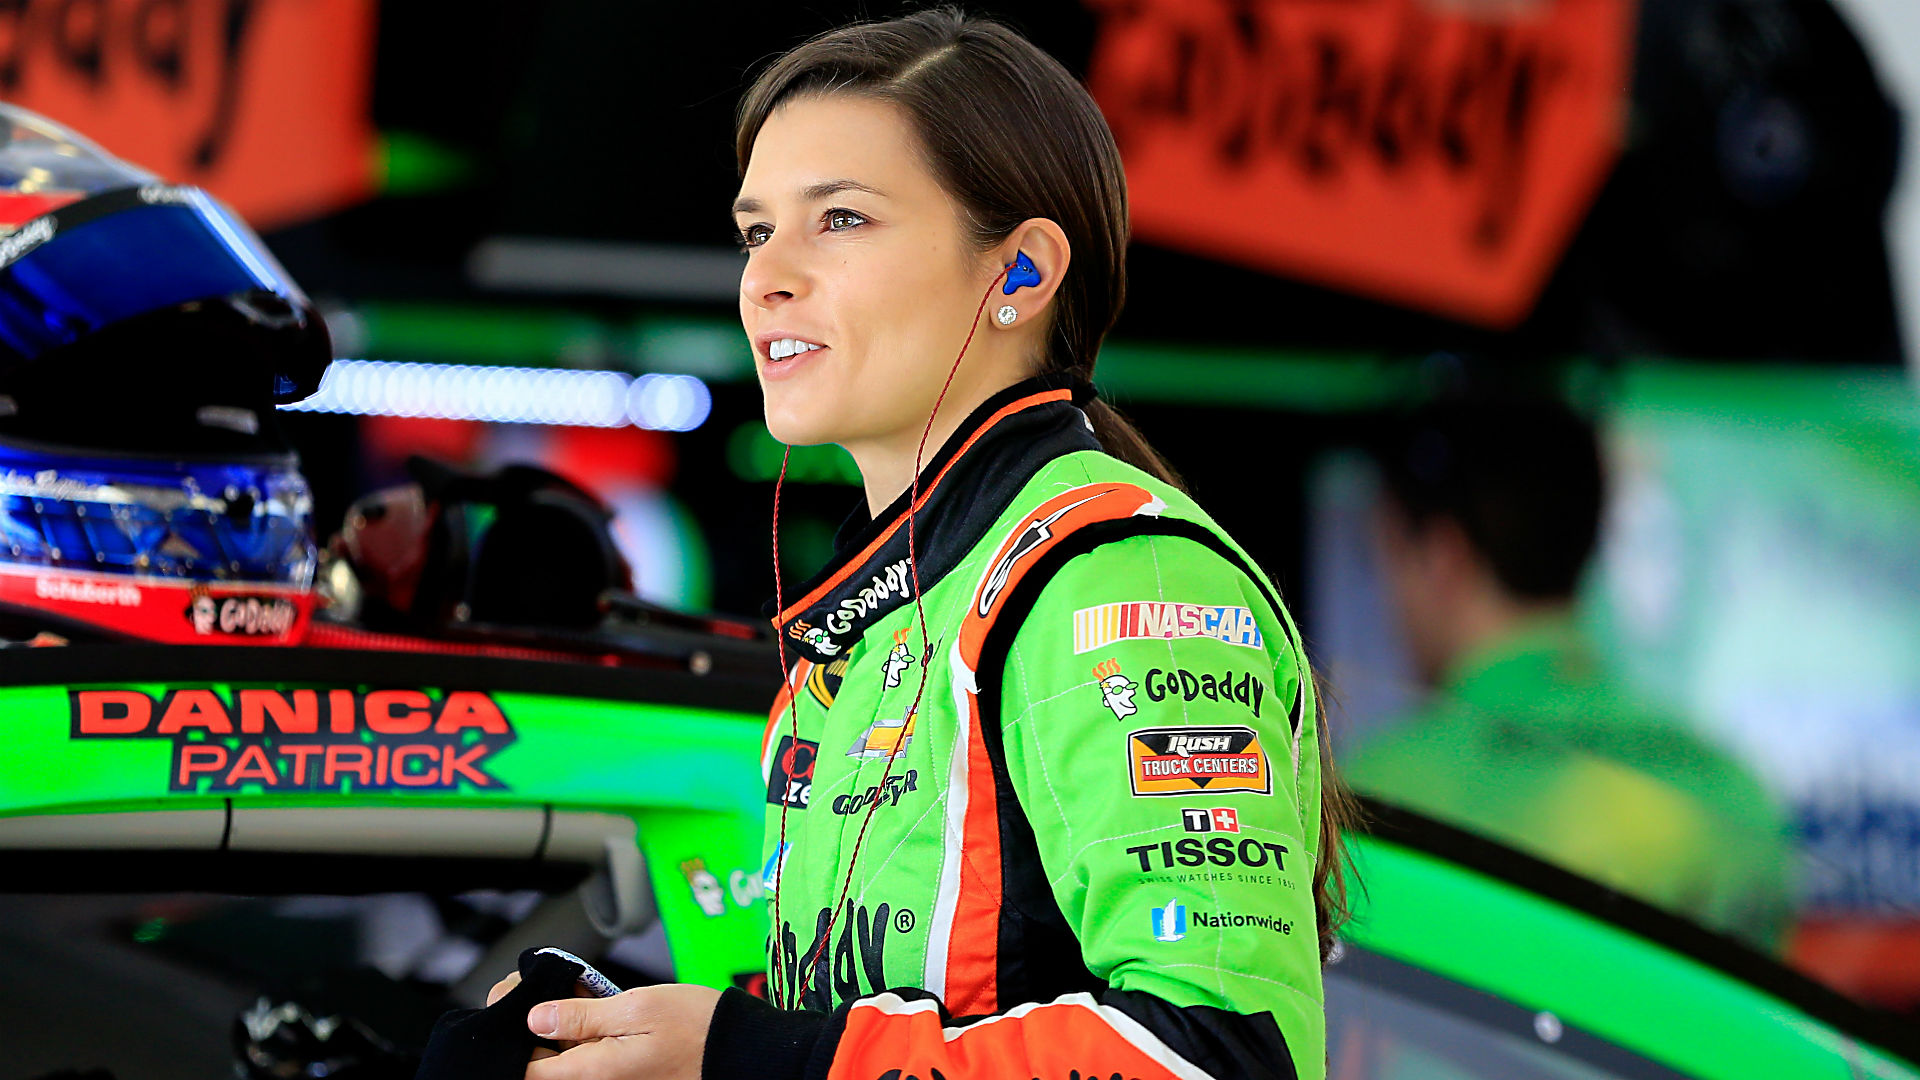 NASCAR Roundtable - Could this be the final season for Danica Patrick?